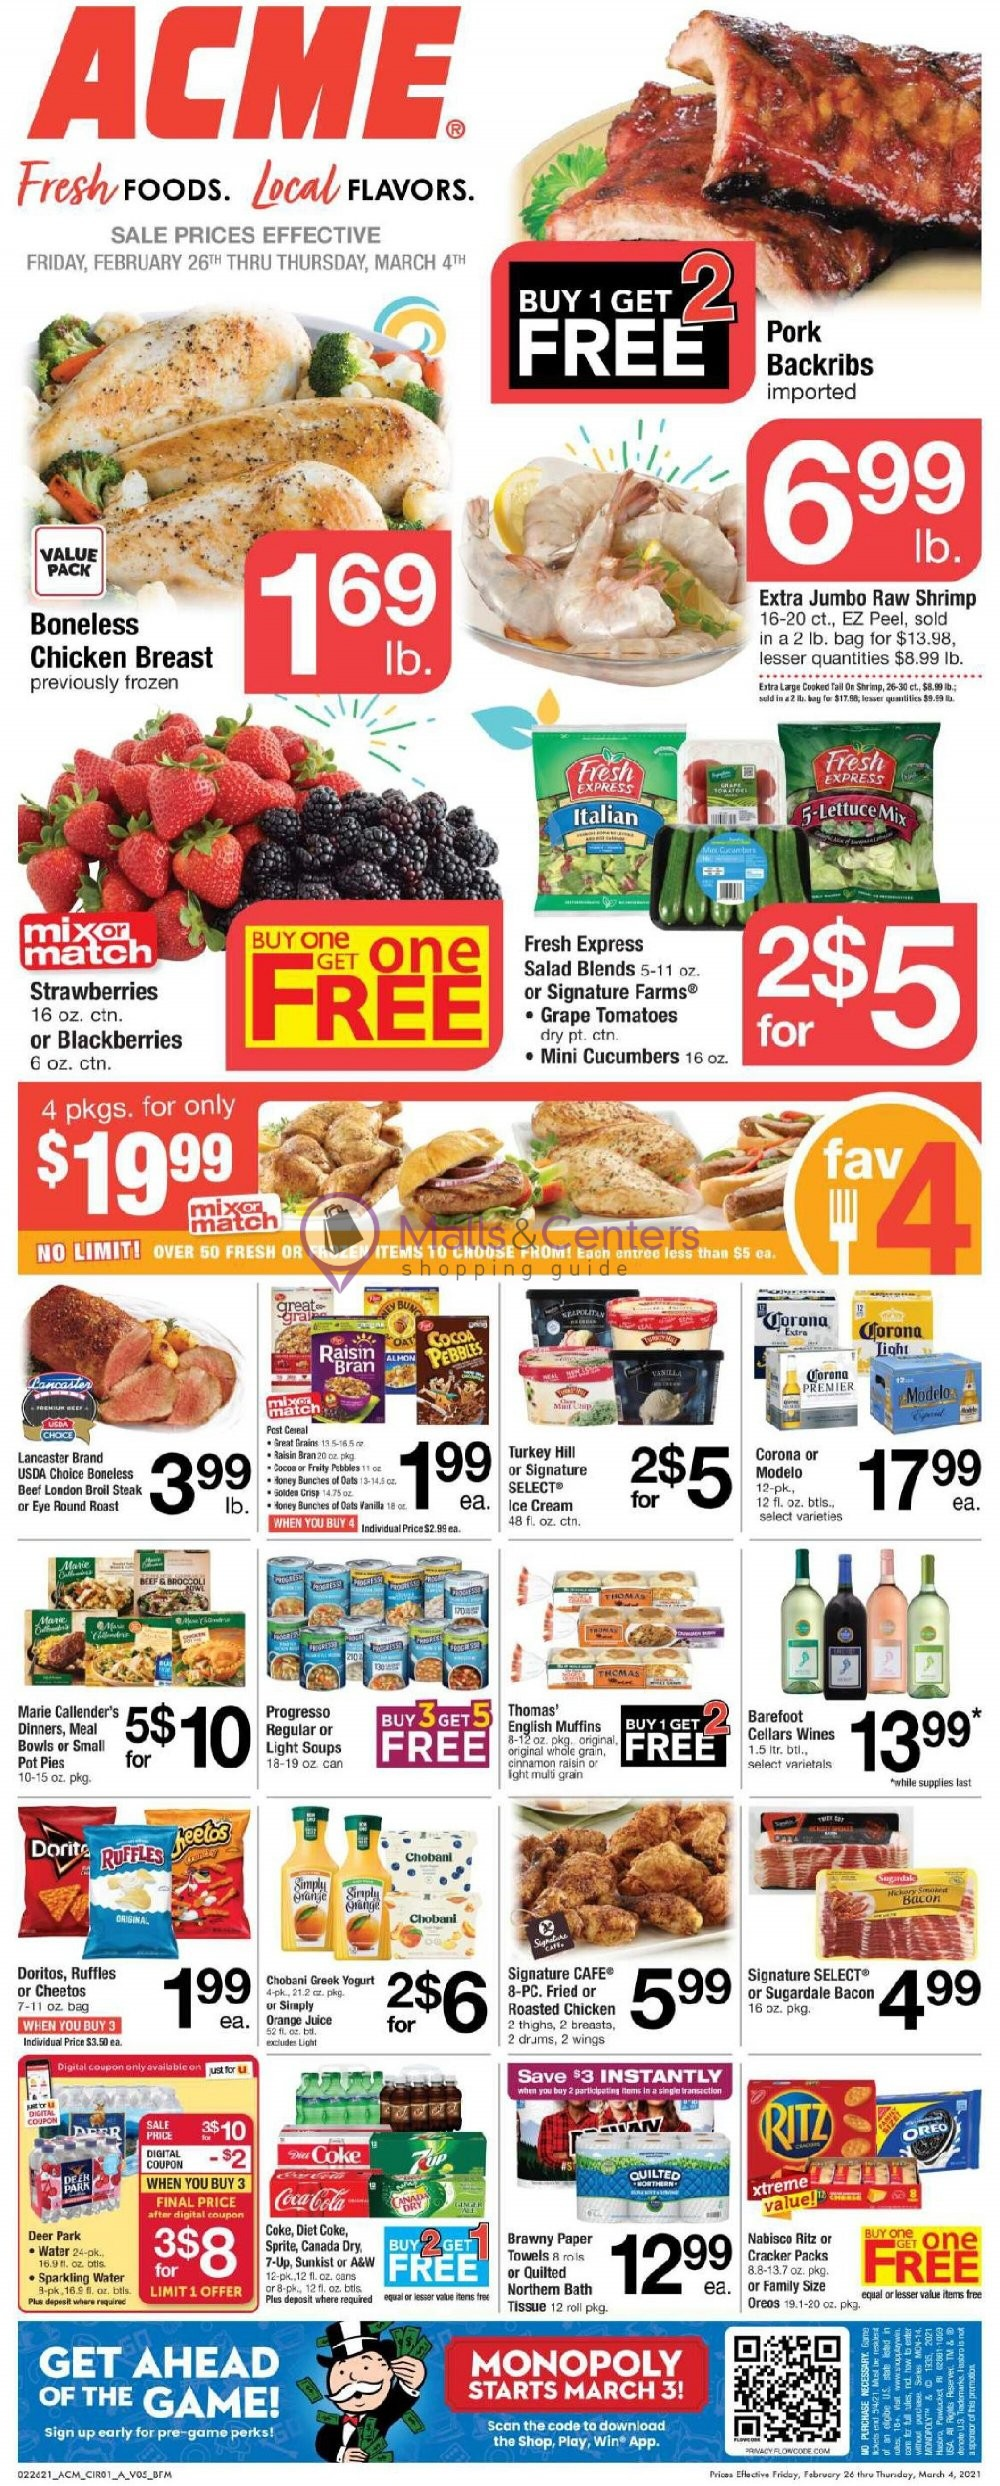 weekly ads Acme - page 1 - mallscenters.com